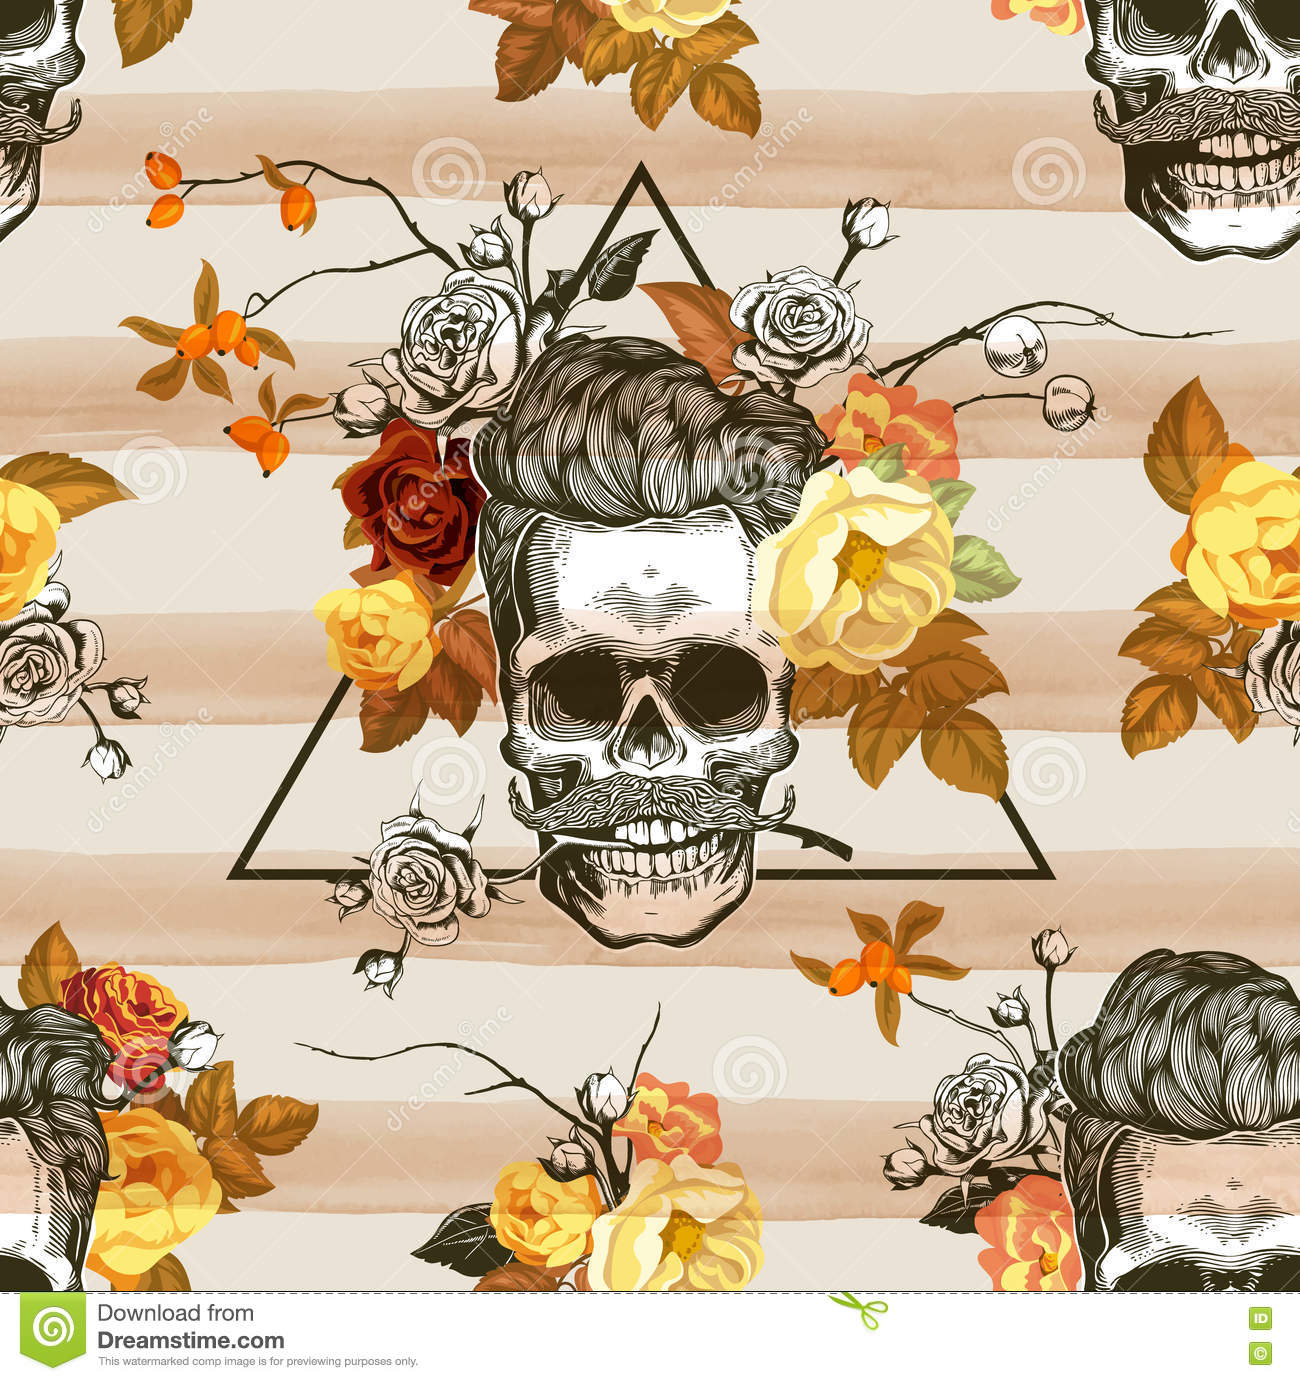 Autumn mood. Seamless pattern with the skulls, flowers and leaves in the background. Skull silhouette in engraving